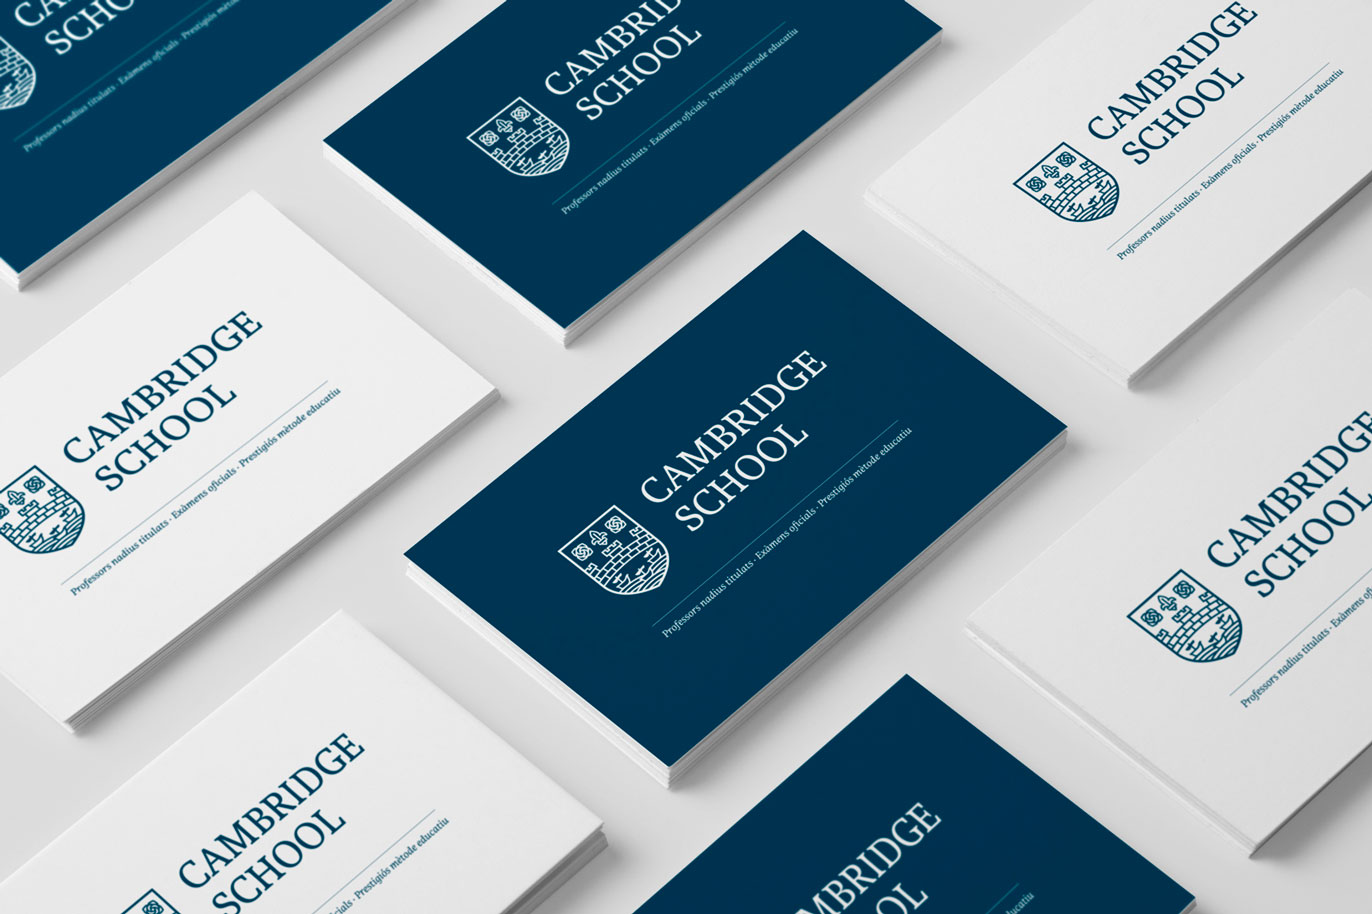 Cambridge School logo restyling english academy languages logotype grpahic design illustration typography business cards Vibranding